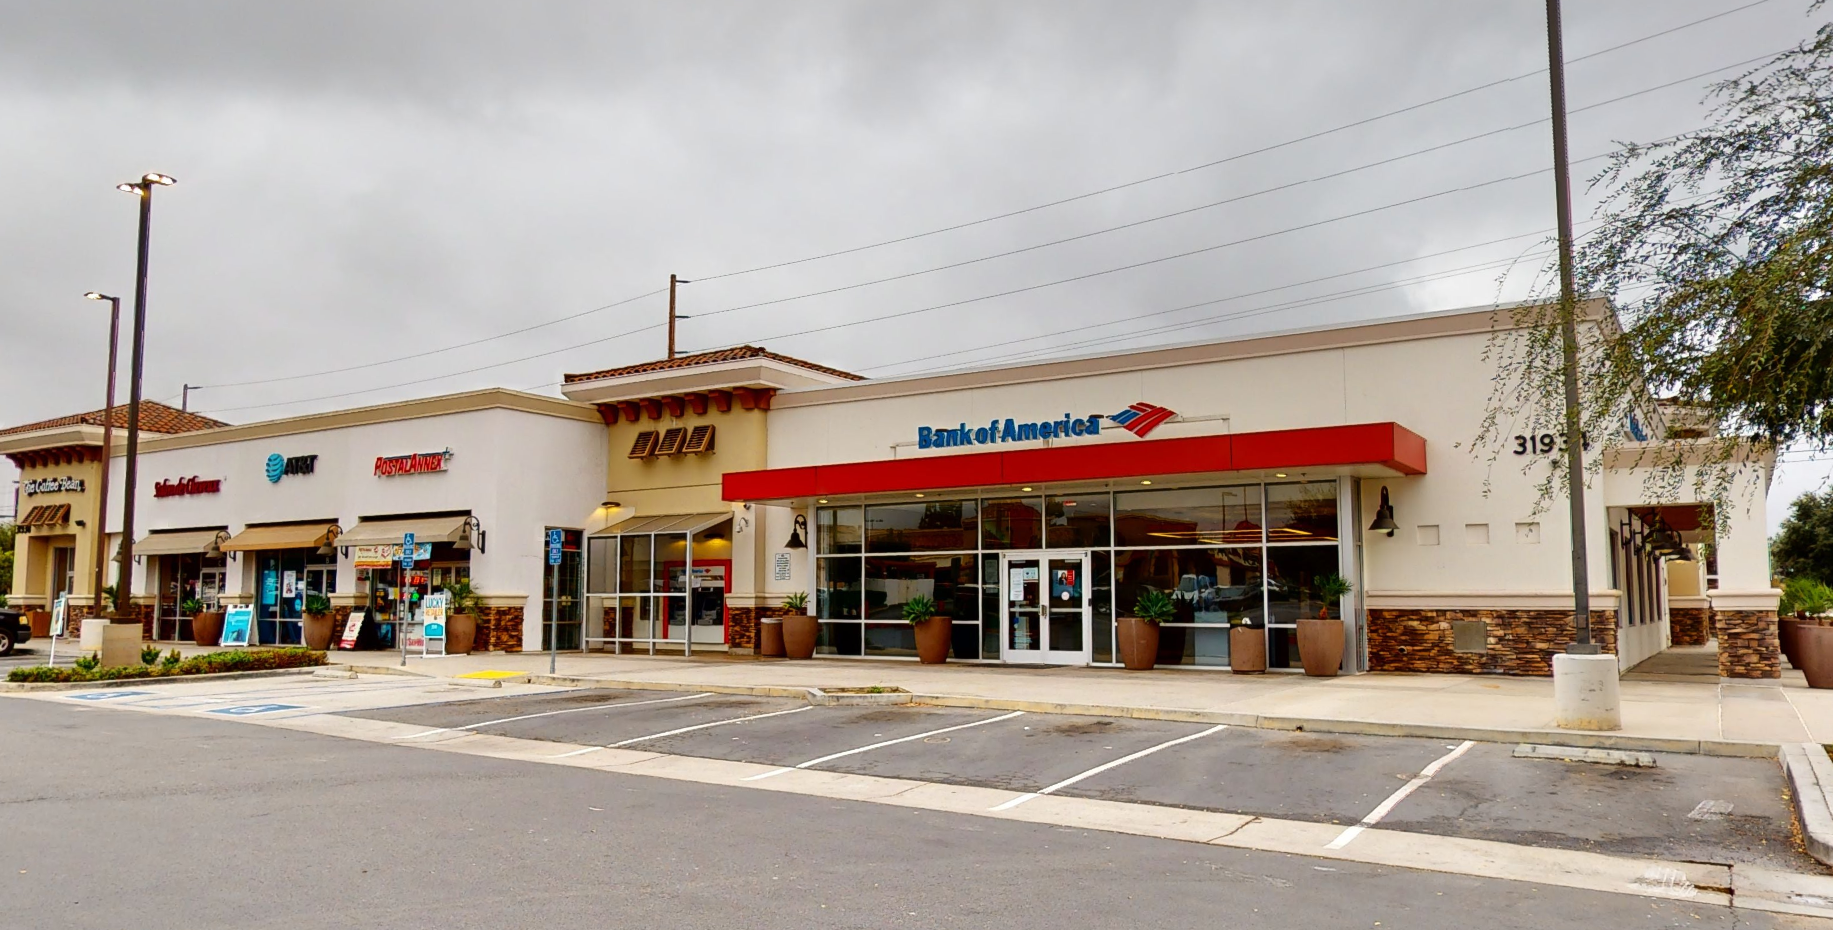 Bank of America financial center with drive-thru ATM | 31934 Temecula Pkwy, Temecula, CA 92592